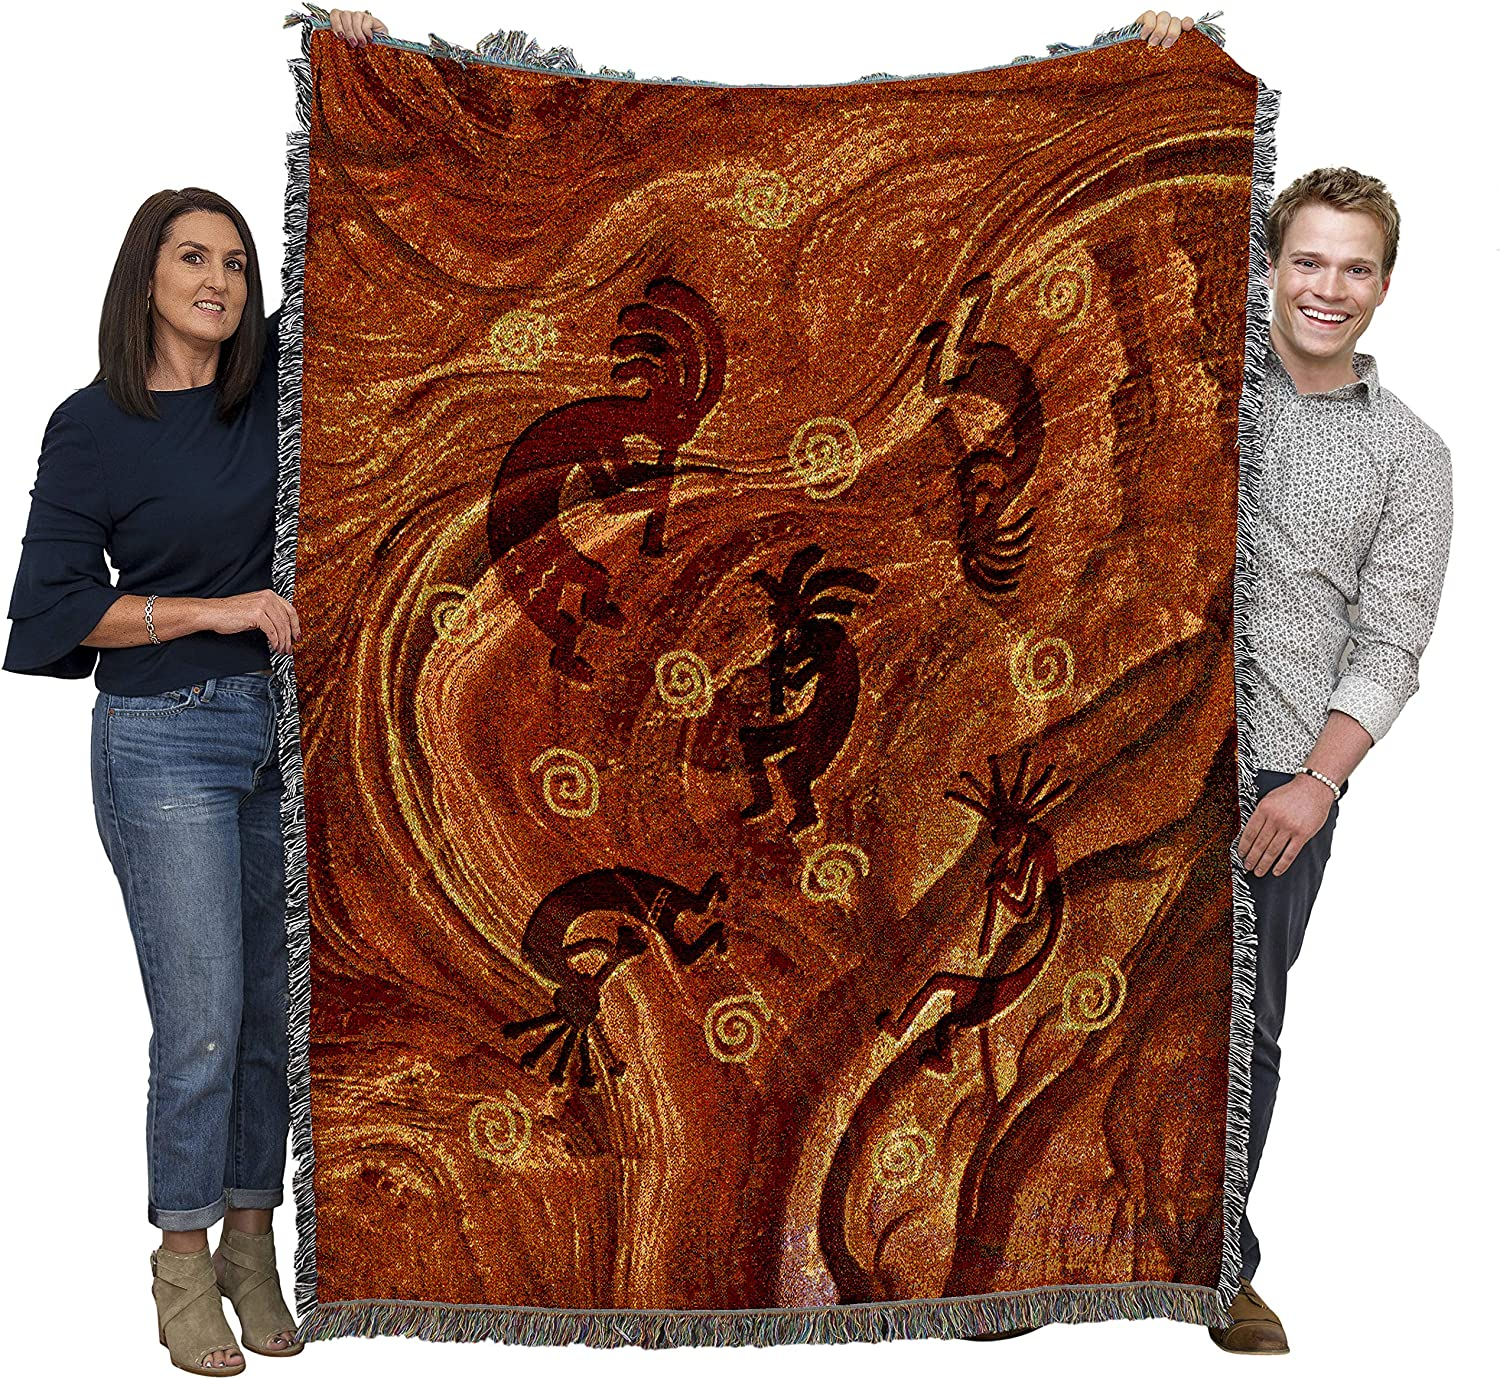 Pure Country Weavers Kokopelli The Ancient Ones - Southwest Cave Rock Art Blanket Throw Woven from Cotton - Made in The USA (72x54)